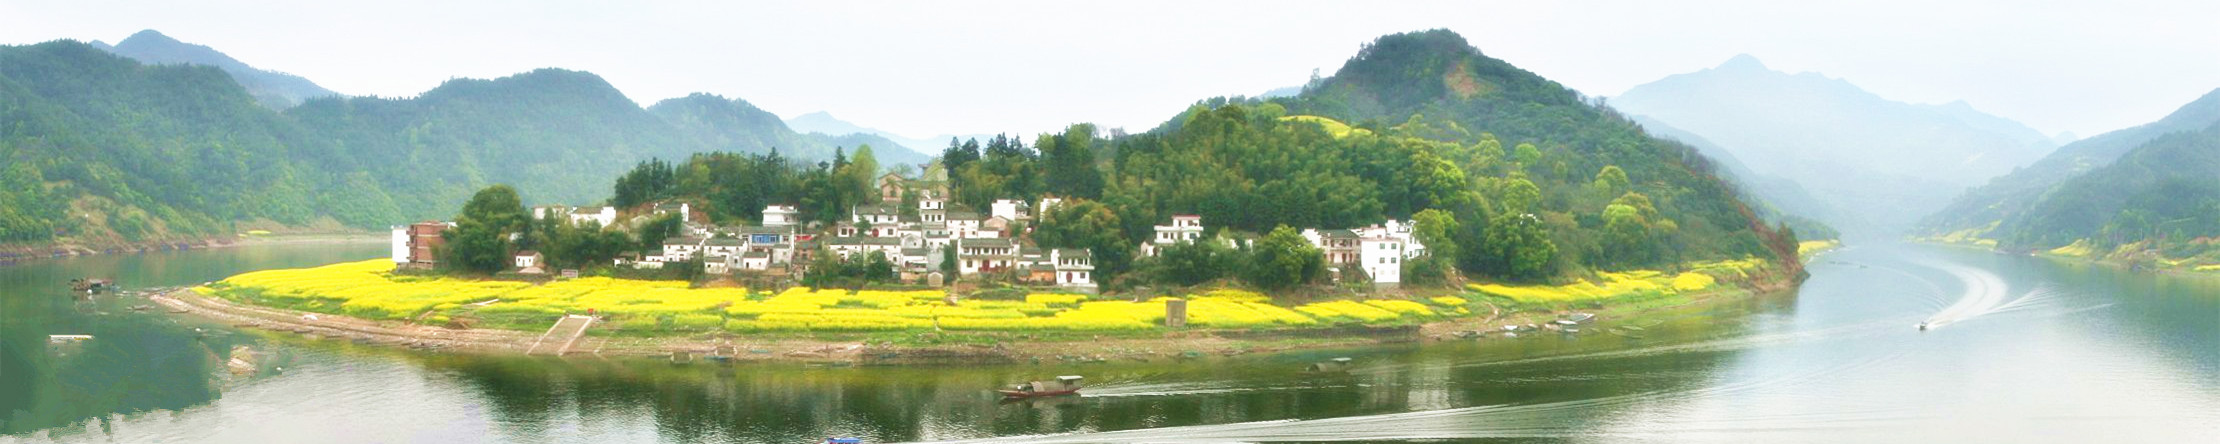 Beautiful Scenery along the Xin'an River